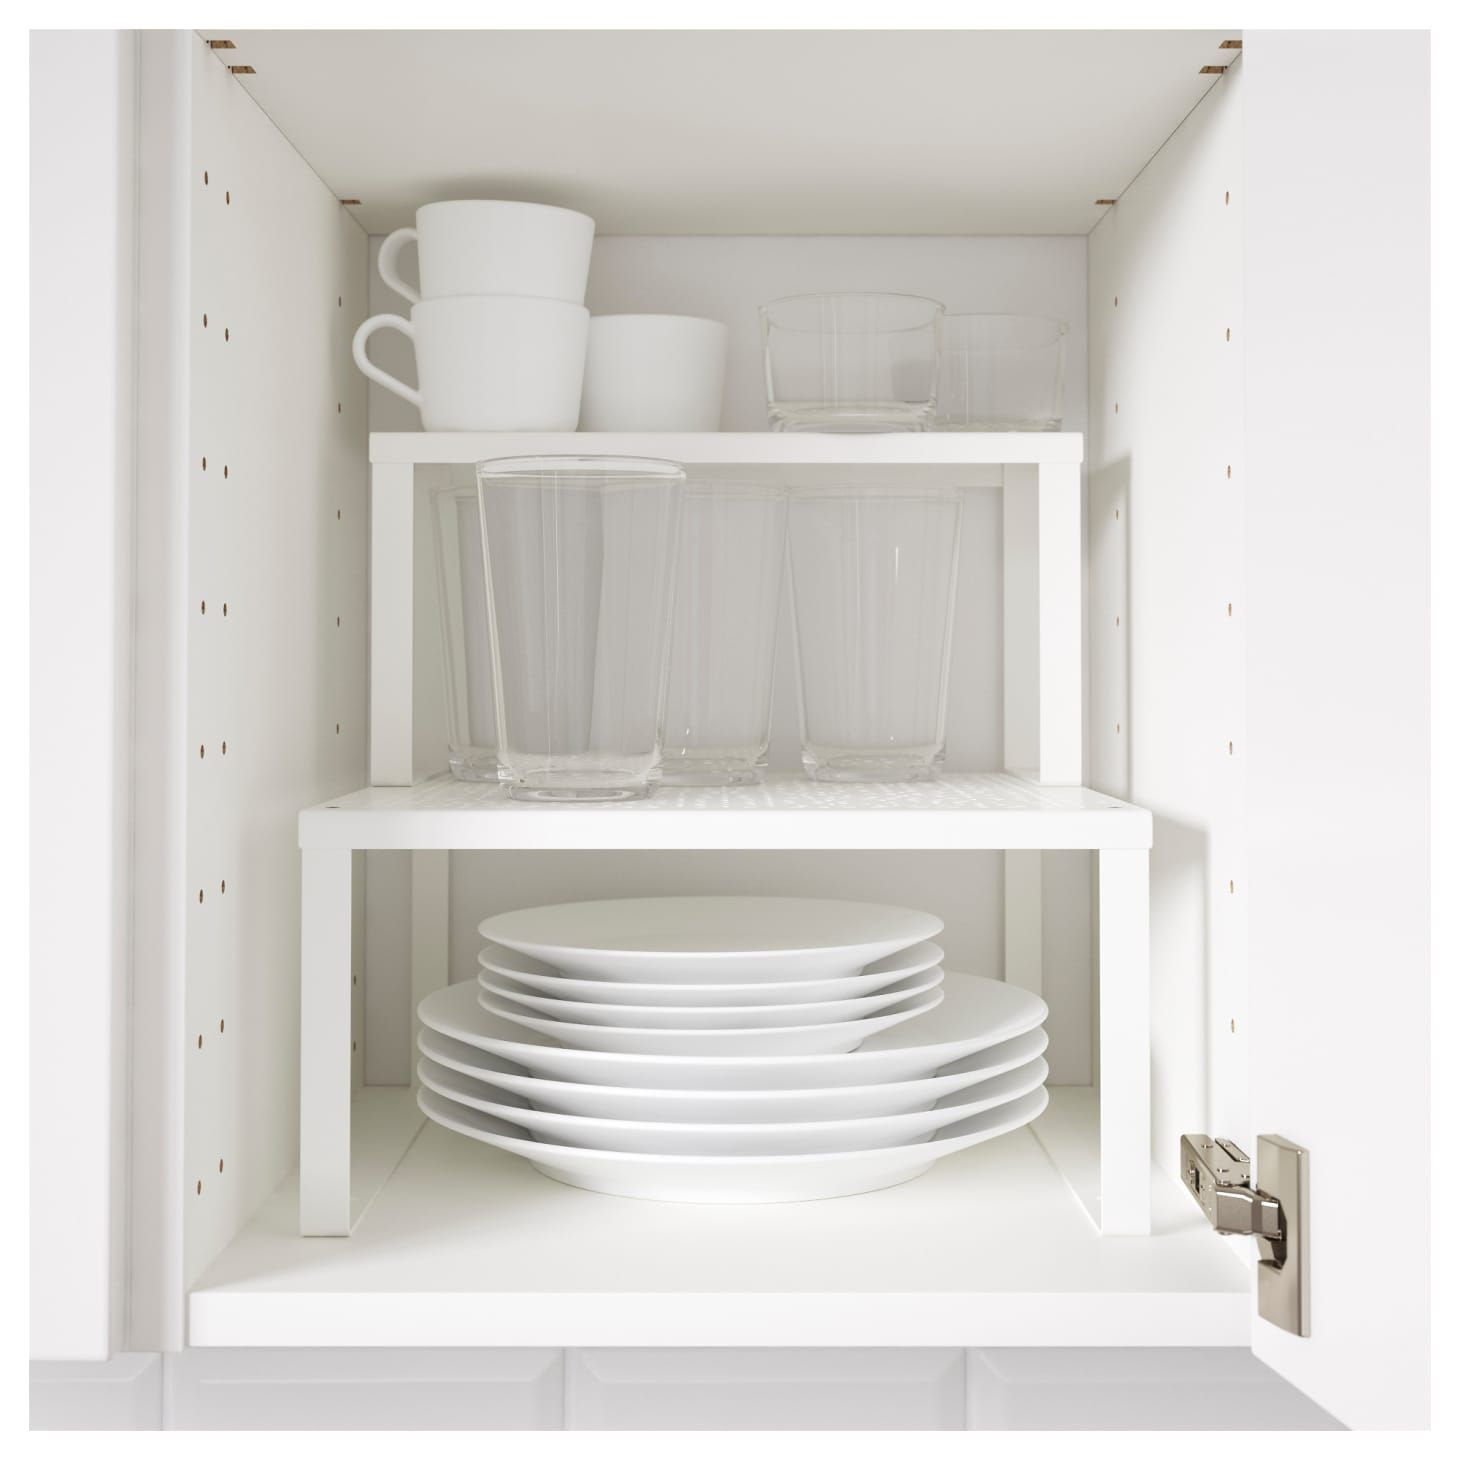 Kitchen Cabinet Organizers Ikea Page Not Found • Variant Living | Shelves, Ikea kitchen cabinets